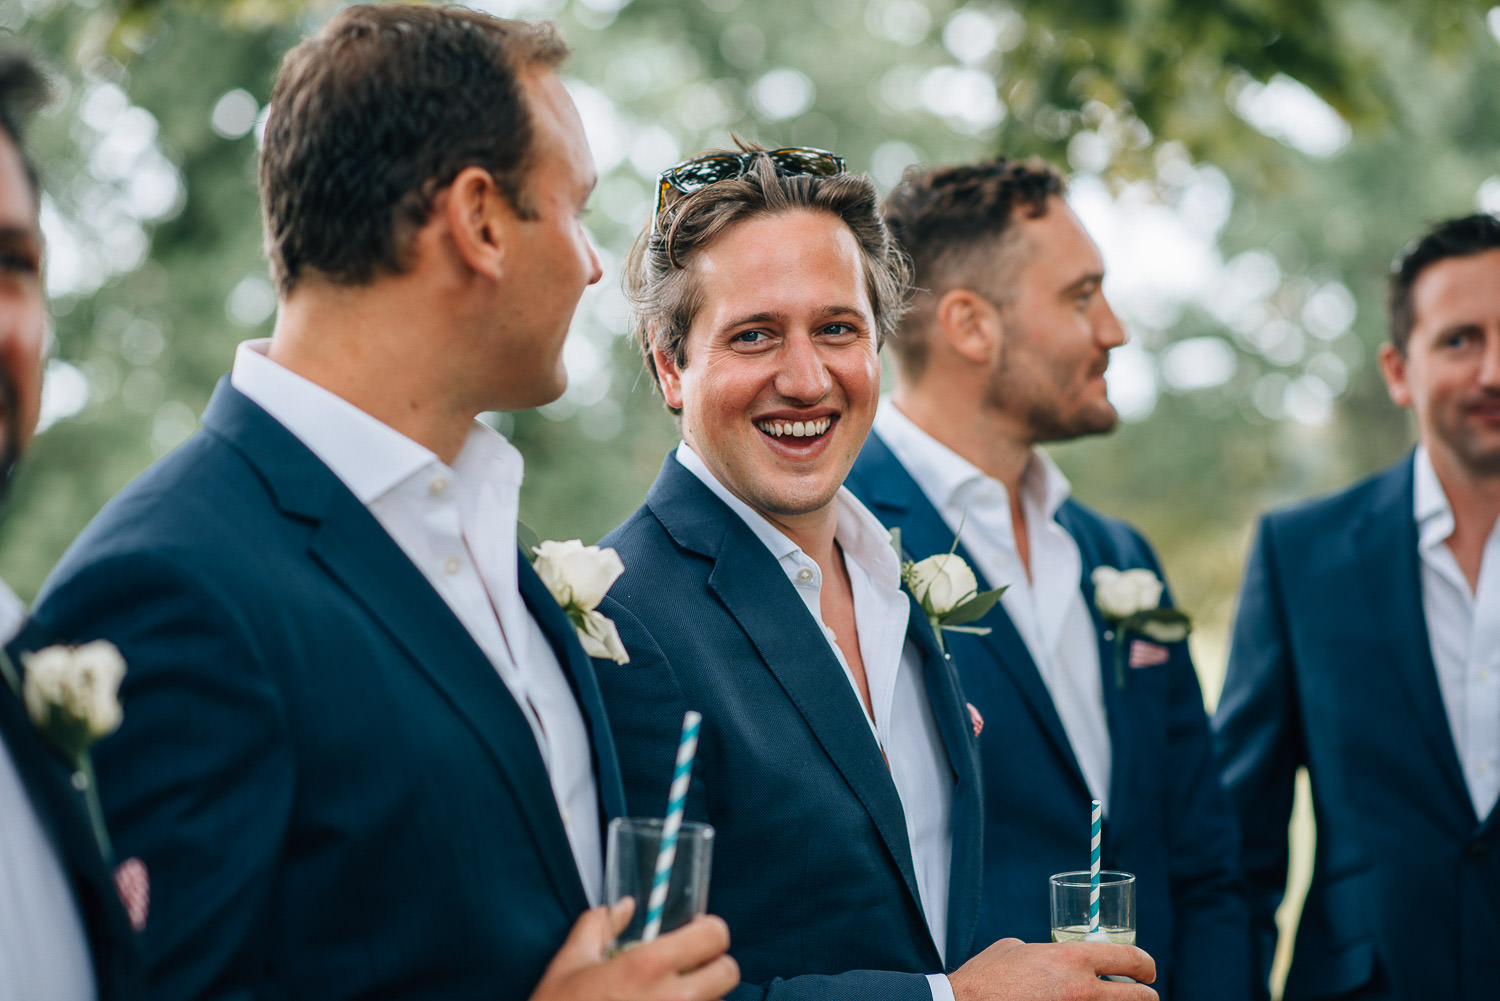 Outdoor wedding ceremony in chateau de la bourlie wedding by destination wedding photographer the shannons photography